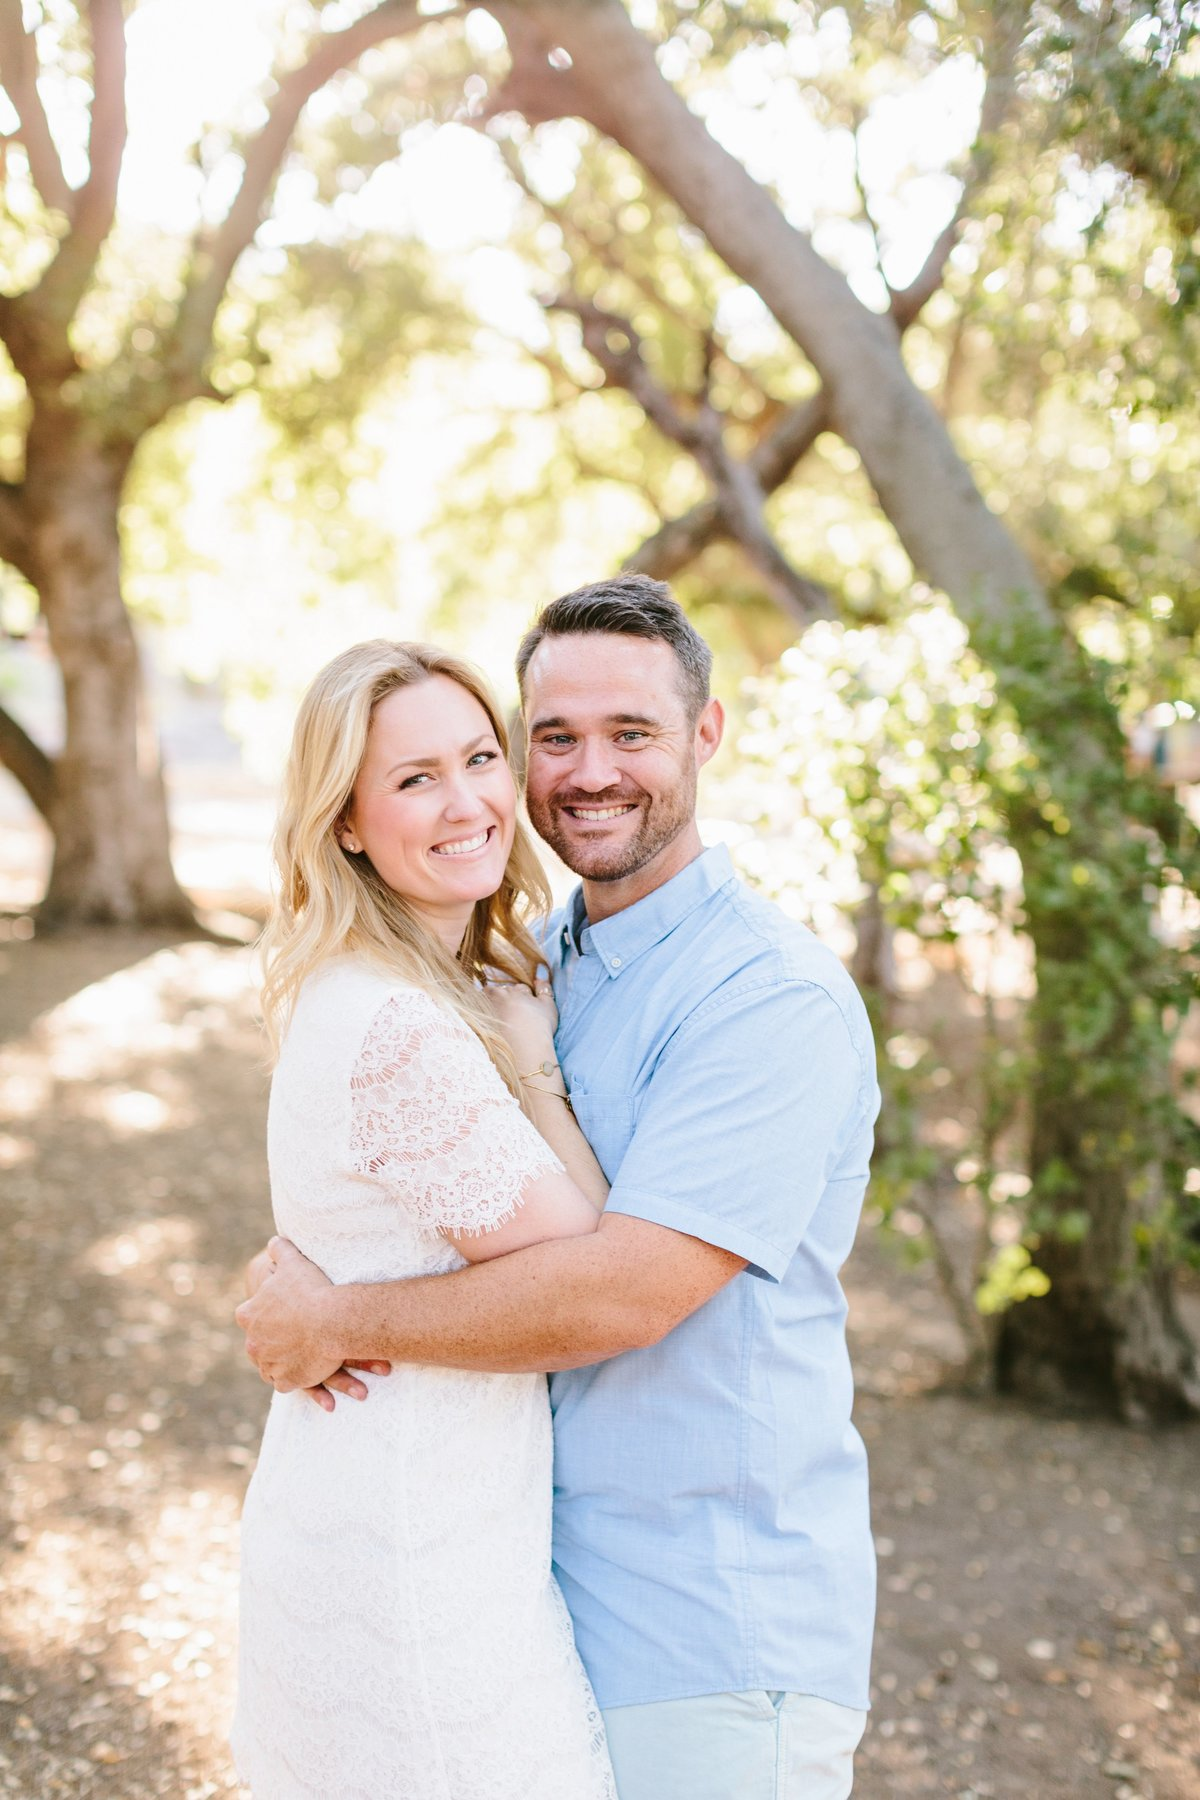 Best California Engagement Photographer-Jodee Debes Photography-233